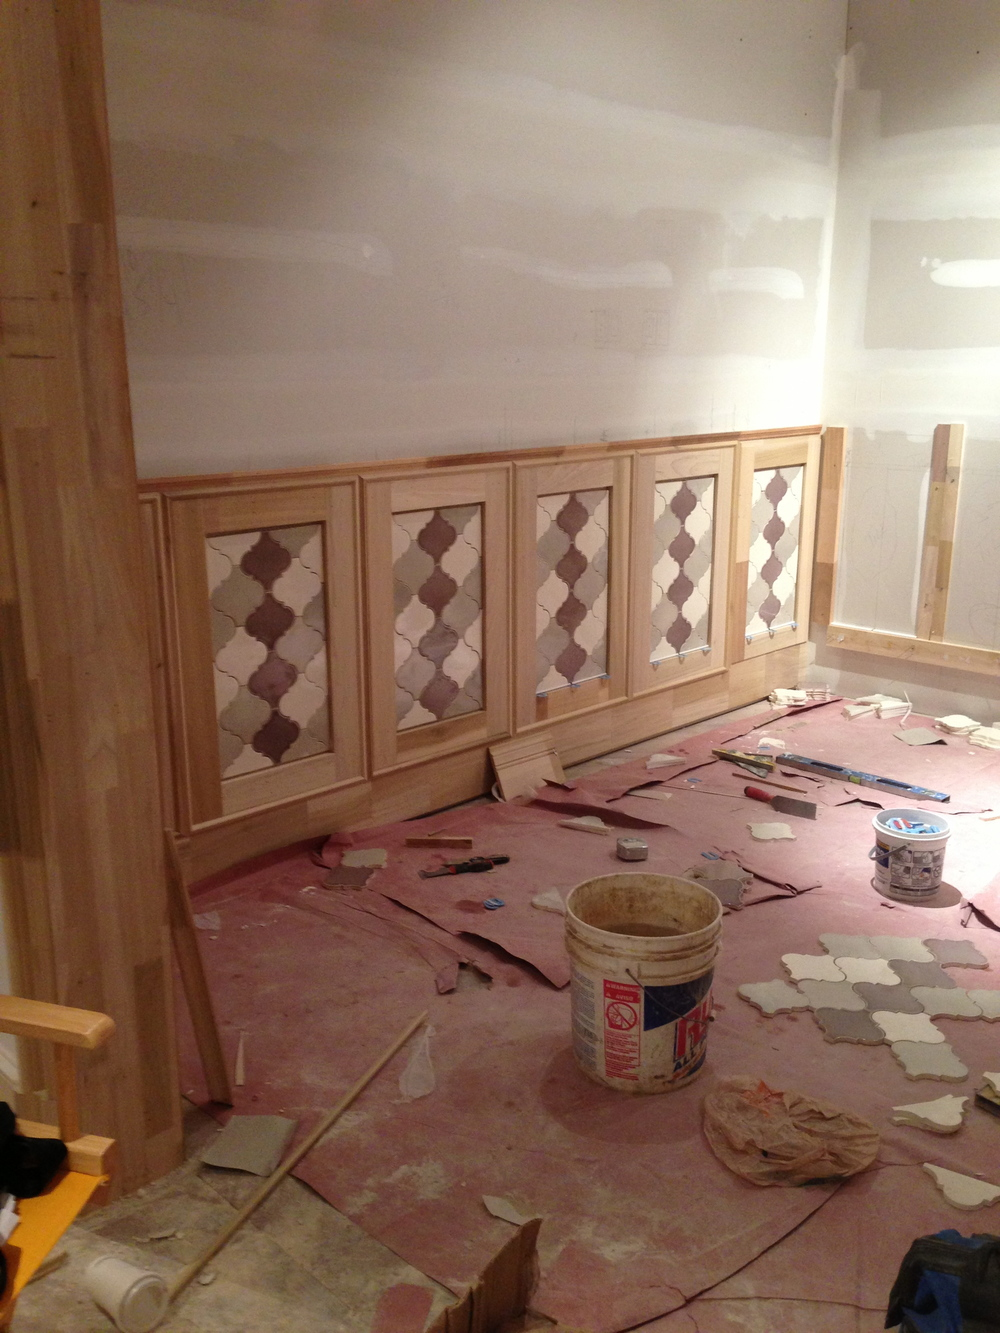 Espresso Room - In Process.  Building the wainscot with a tile insert and a detailed trim design.